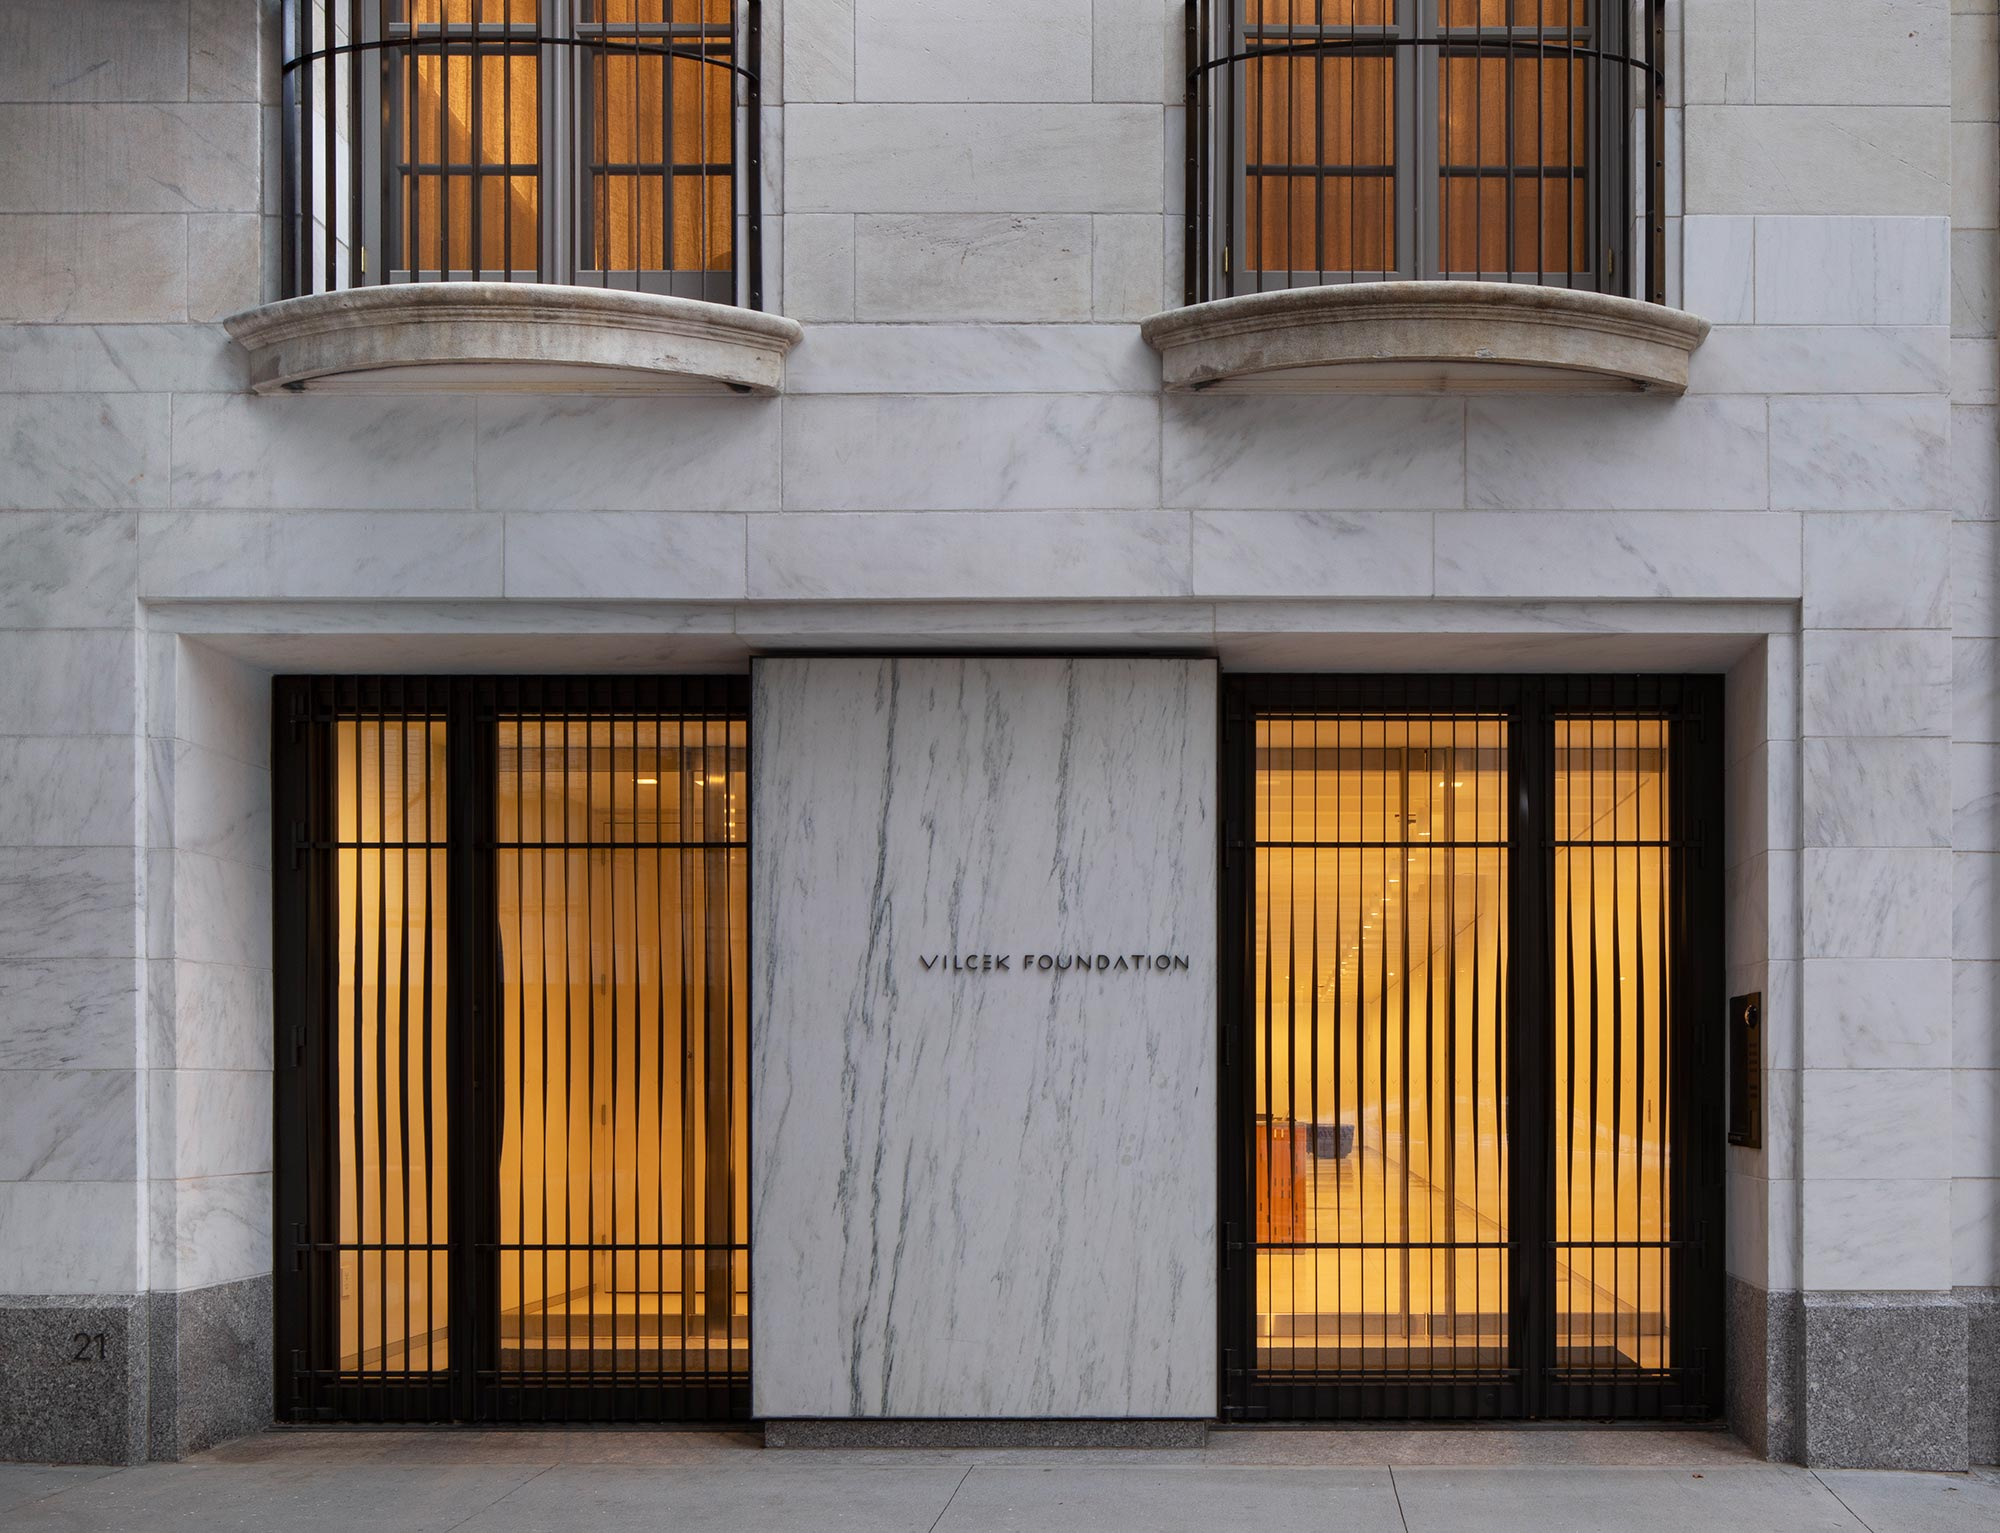 The Vilcek Foundation headquarters in New York City